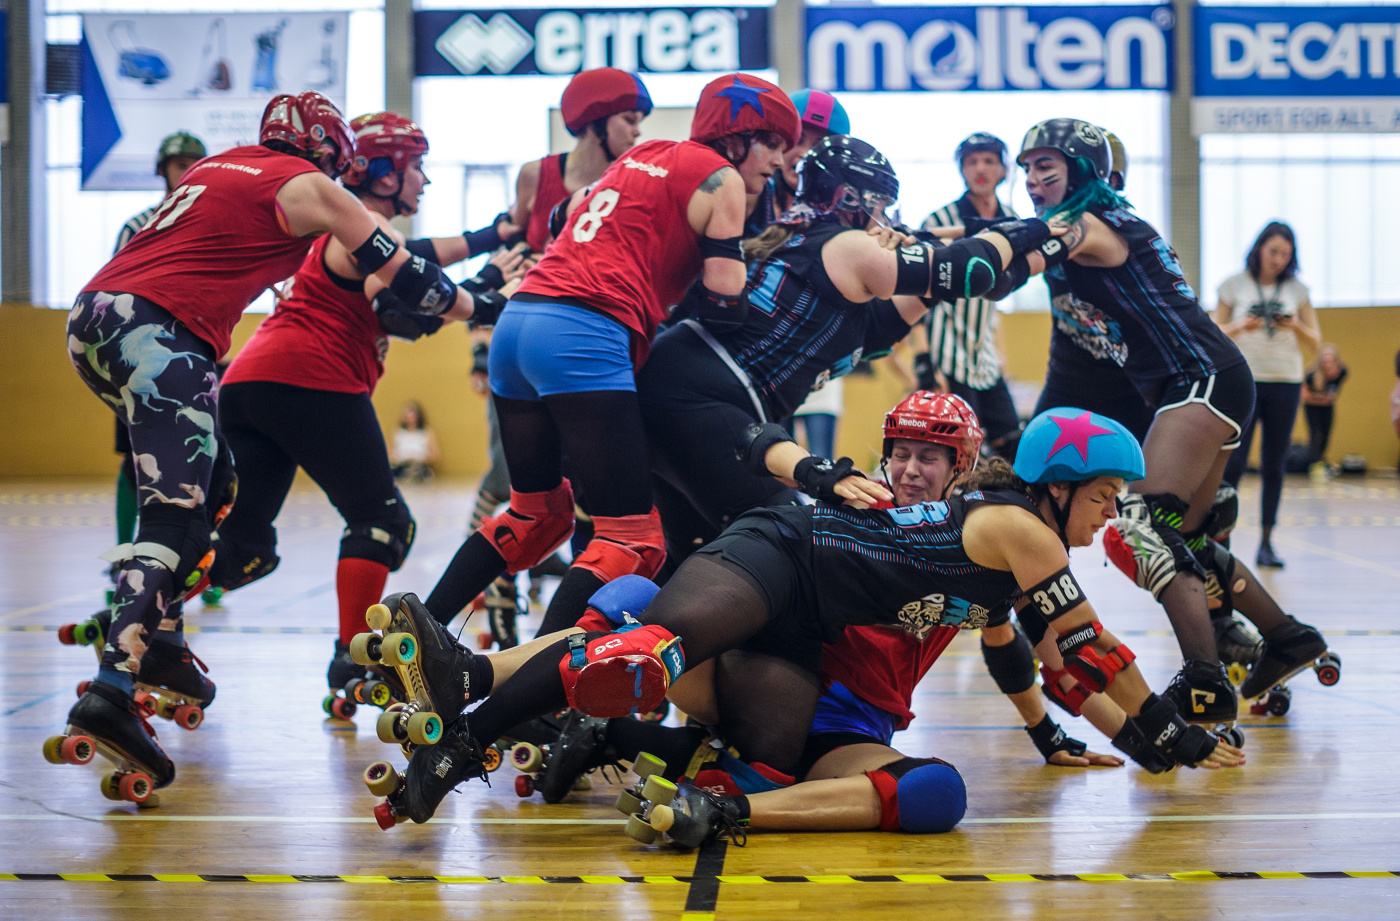 RollerDerby2017_41